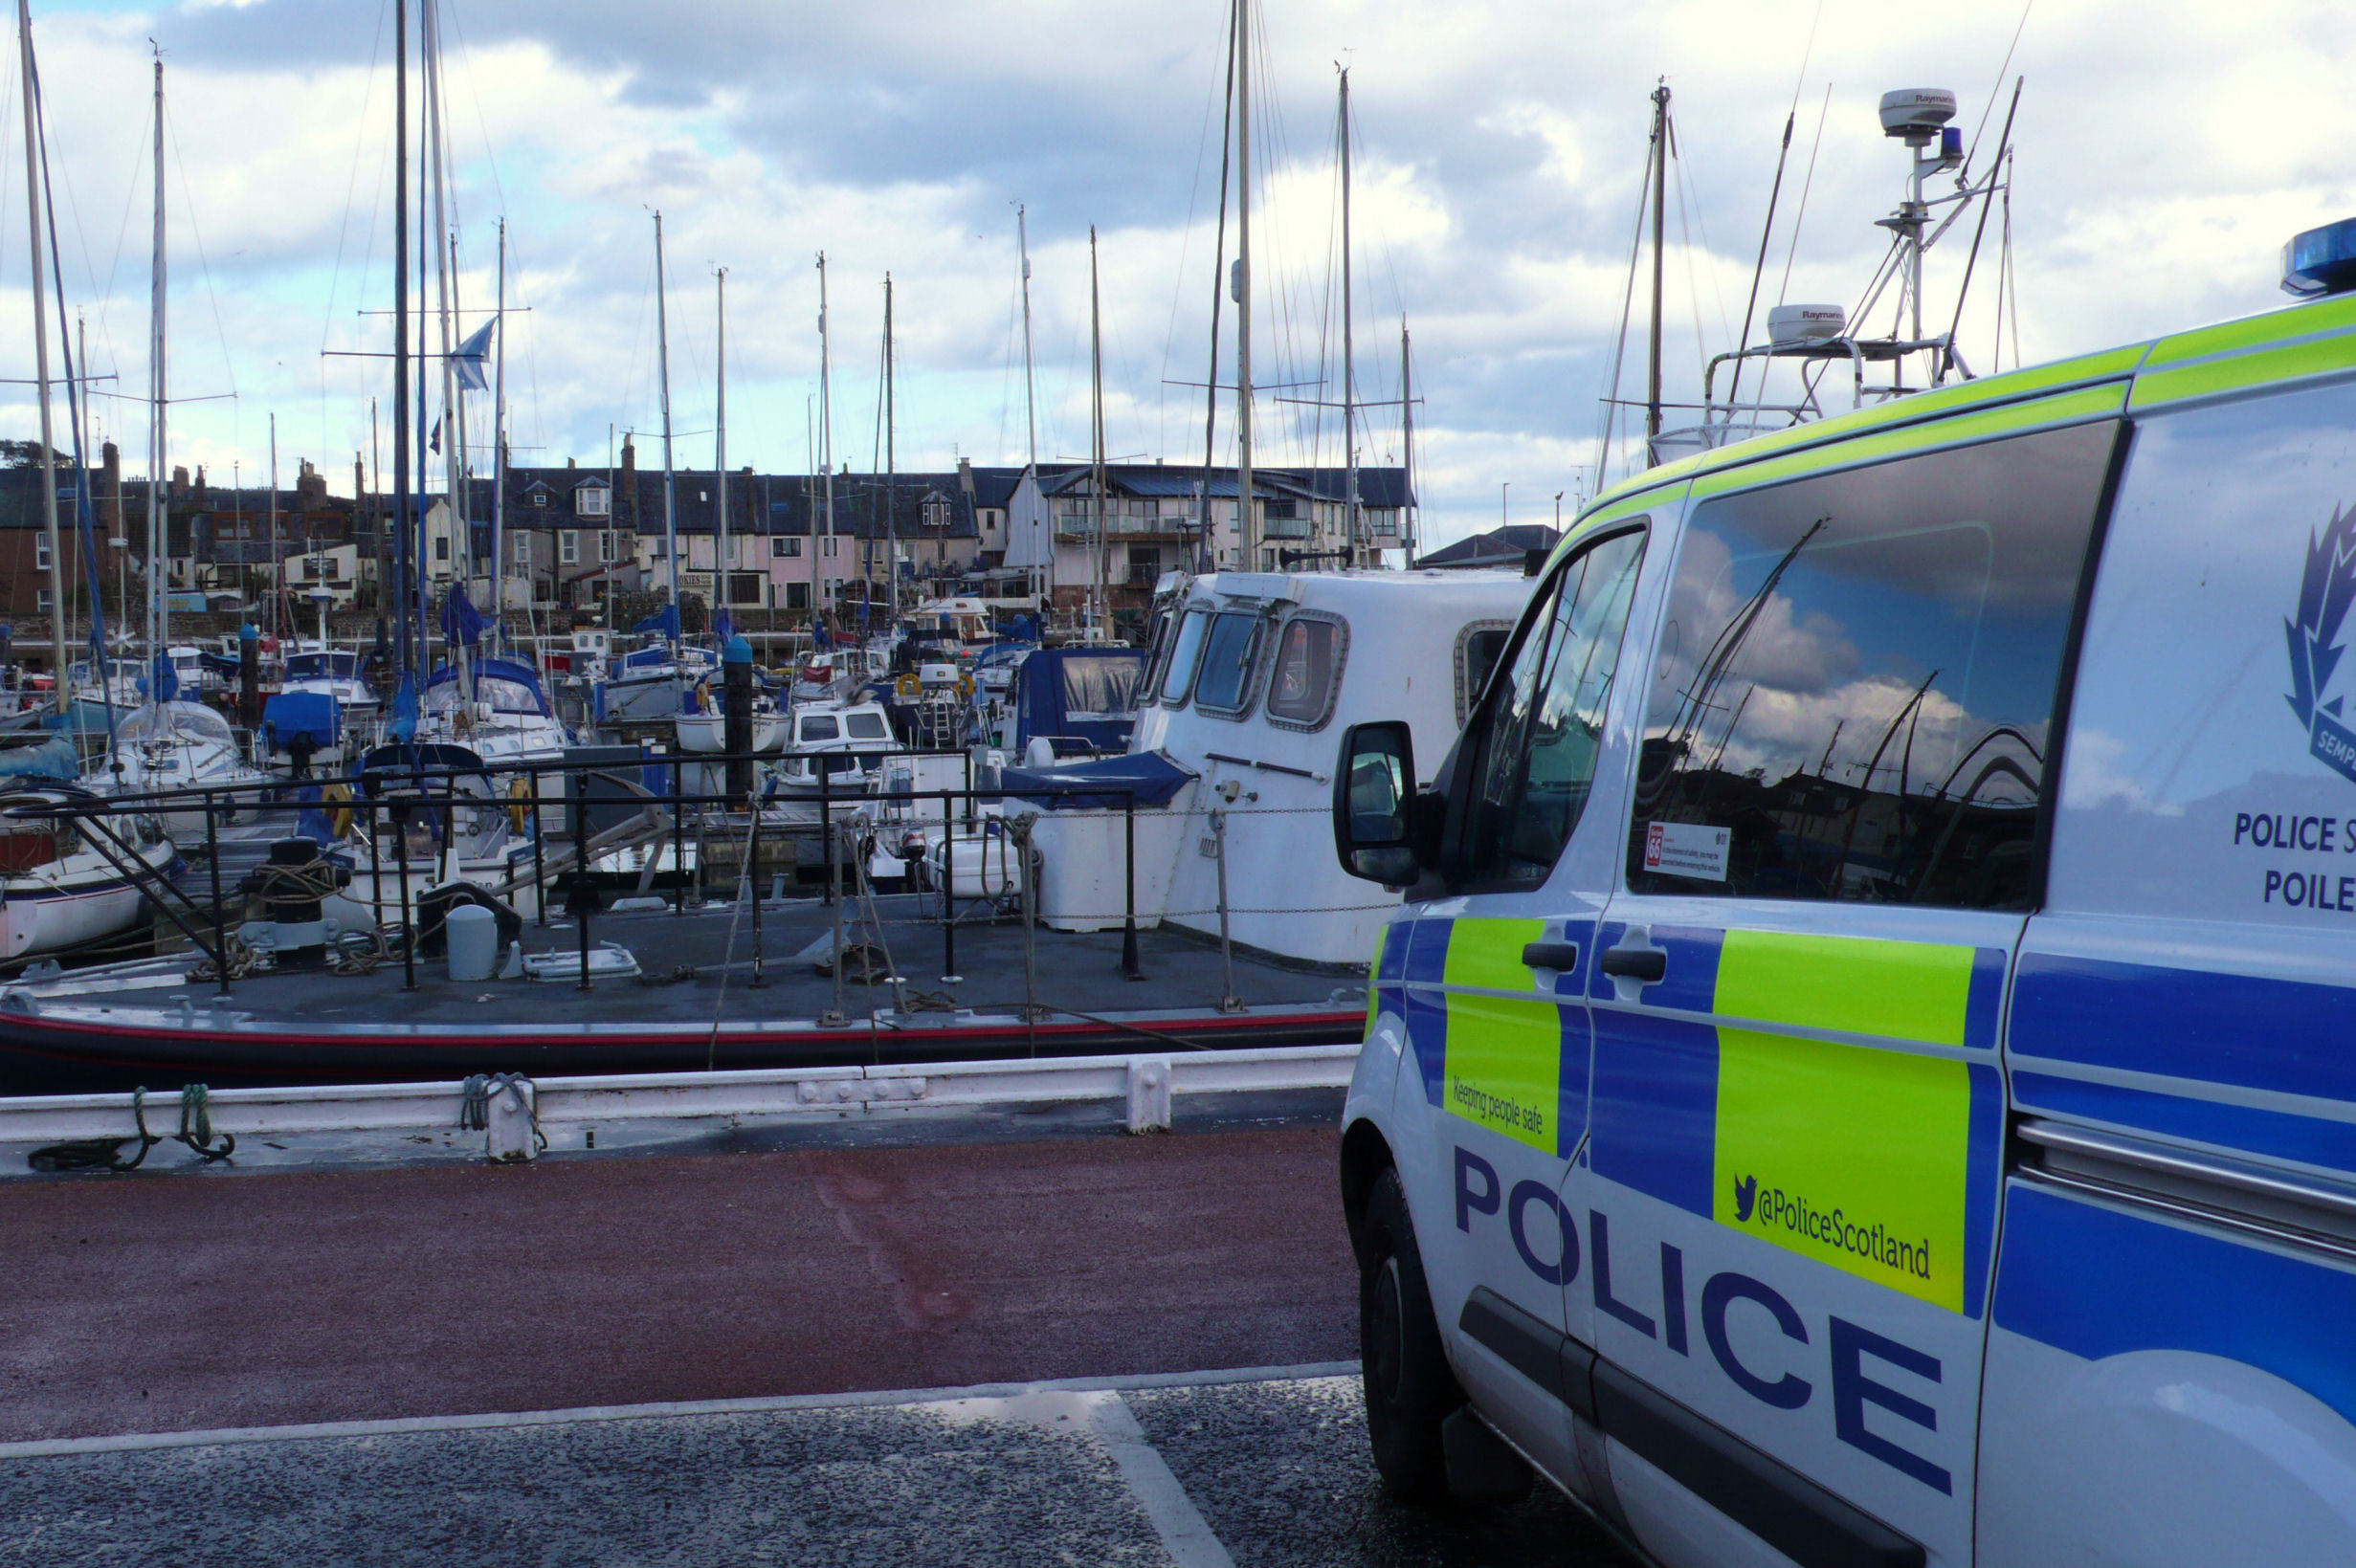 The boat was berthed in the busy Angus marina